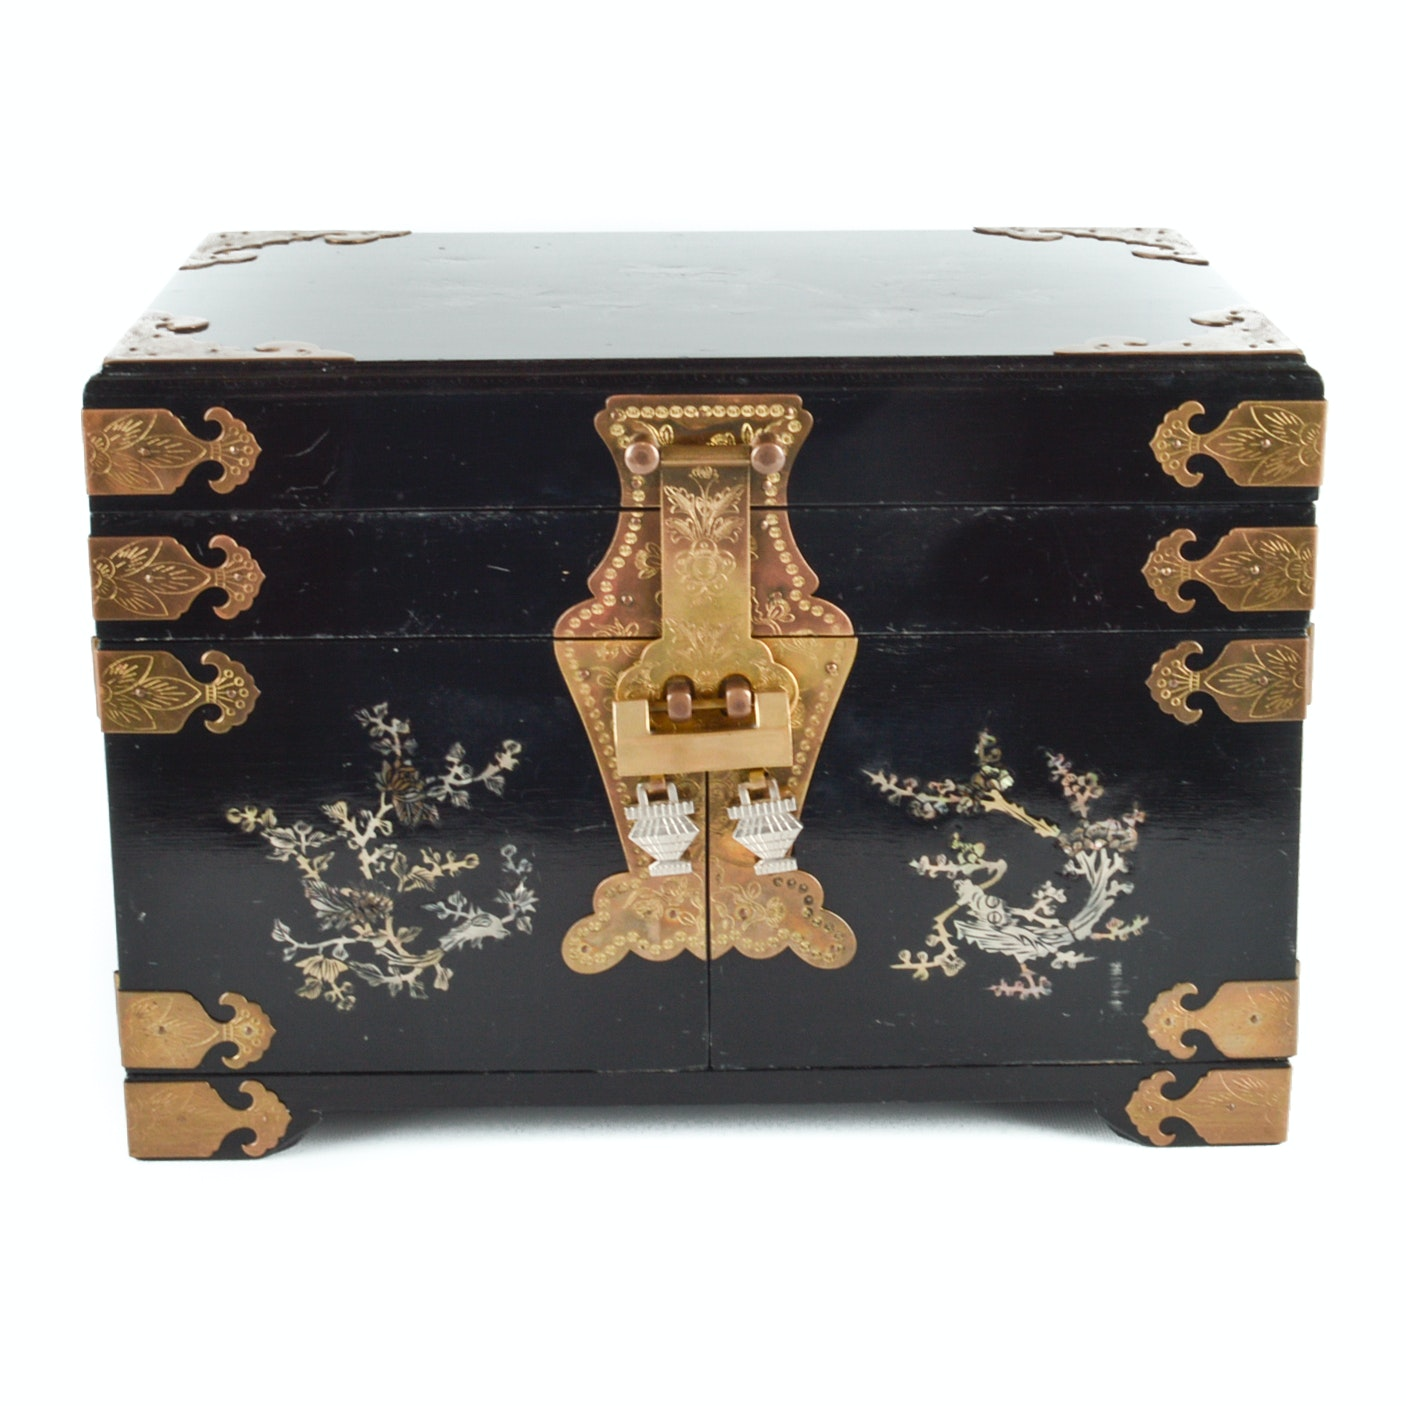 Chinese Black Lacquered Jewelry Chest With Mother of Pearl Inlay